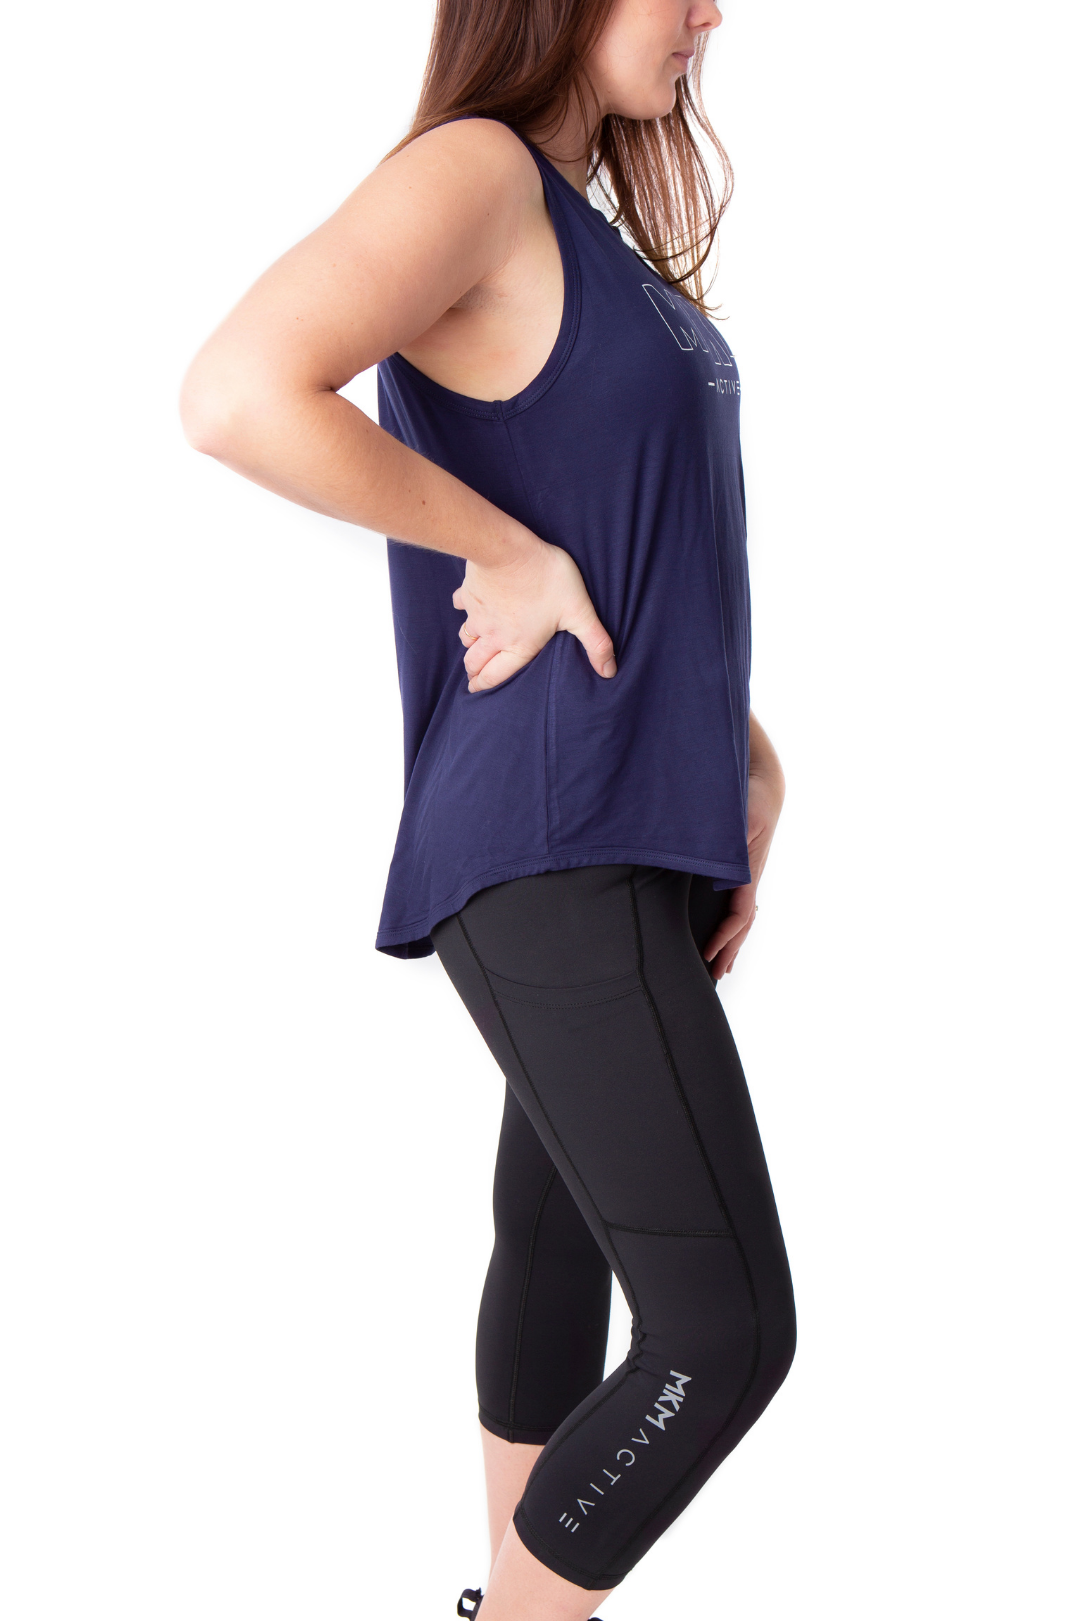 MKM ACTIVE 3/4 BLACK LEGGINGS WITH POCKETS